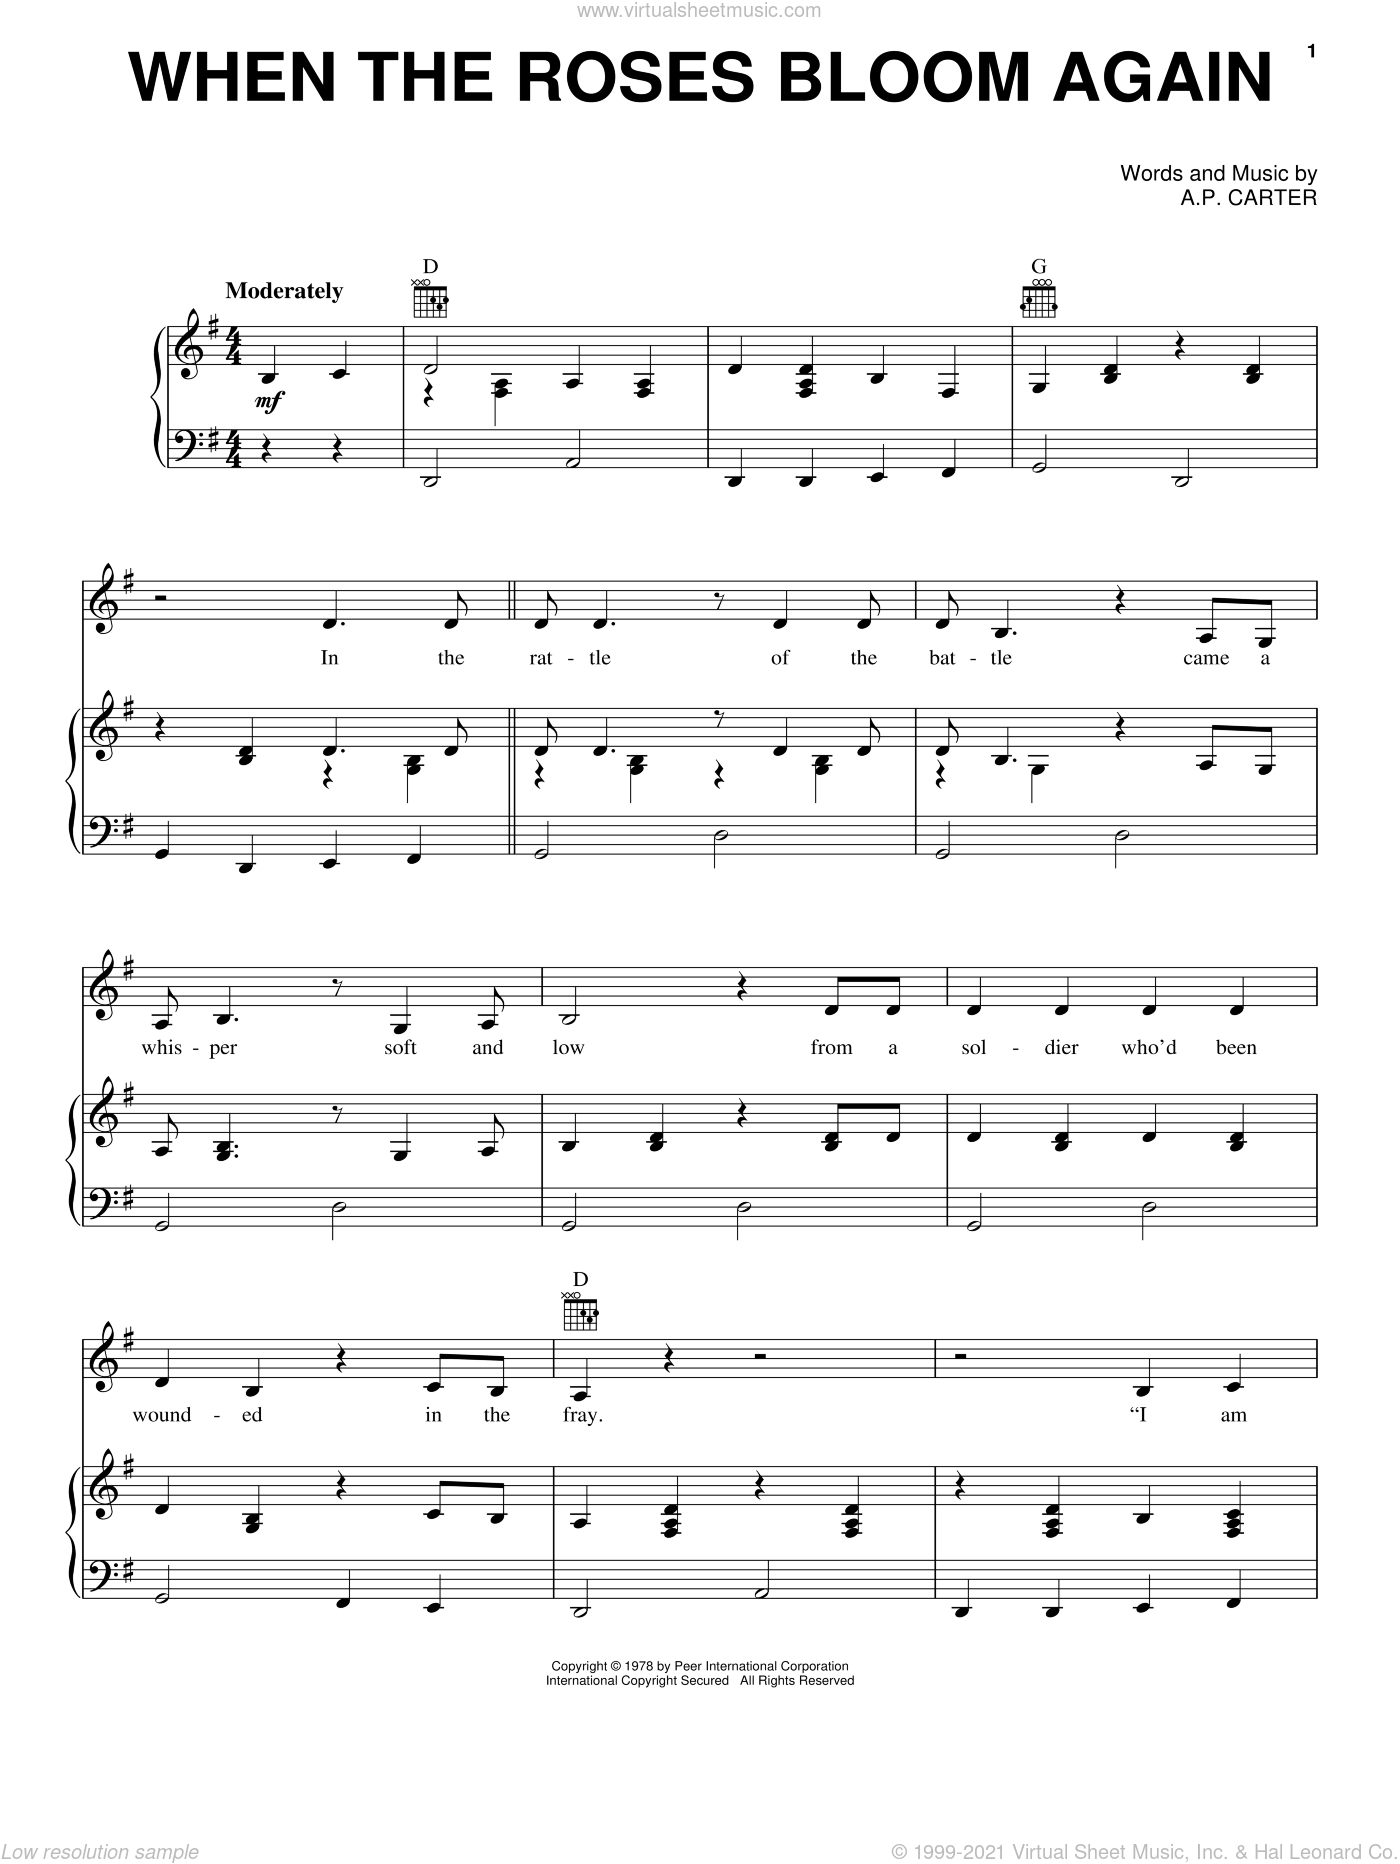 When The Roses Bloom Again sheet music for voice, piano or guitar by A.P. Carter